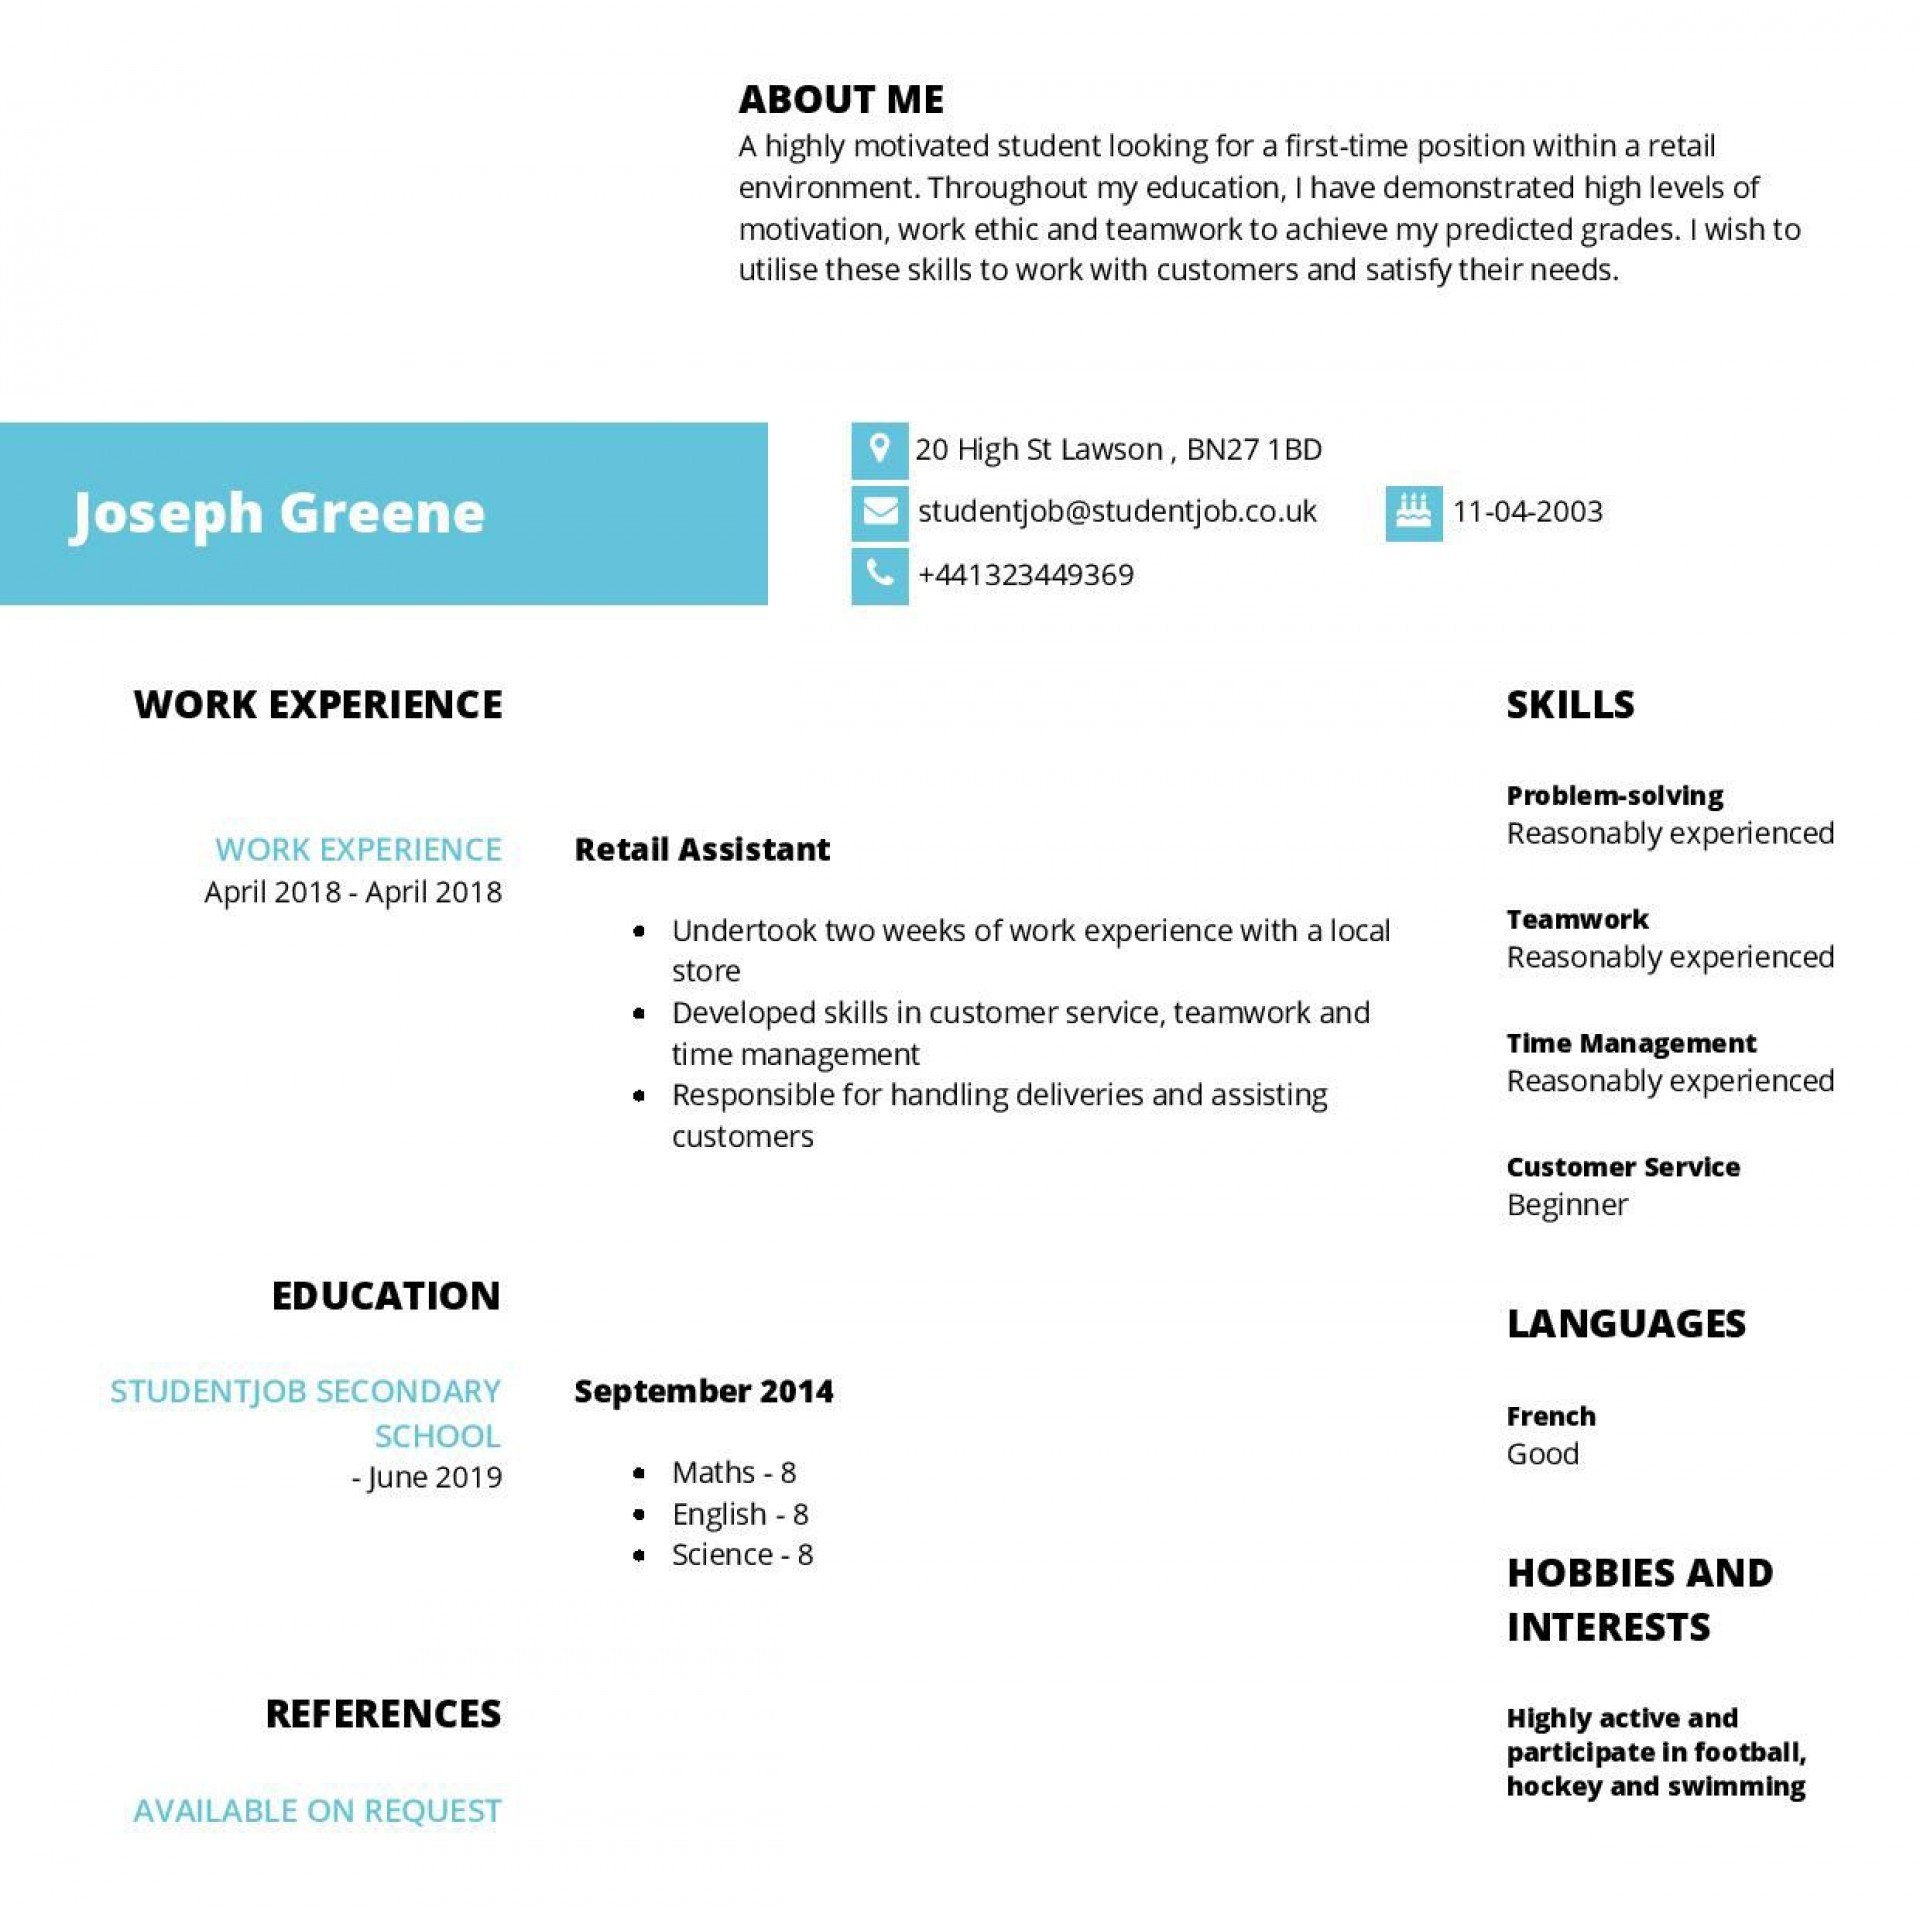 003 Phenomenal Resume Template For First Job Highest Clarity  Student Australia After Time Jobseeker1920